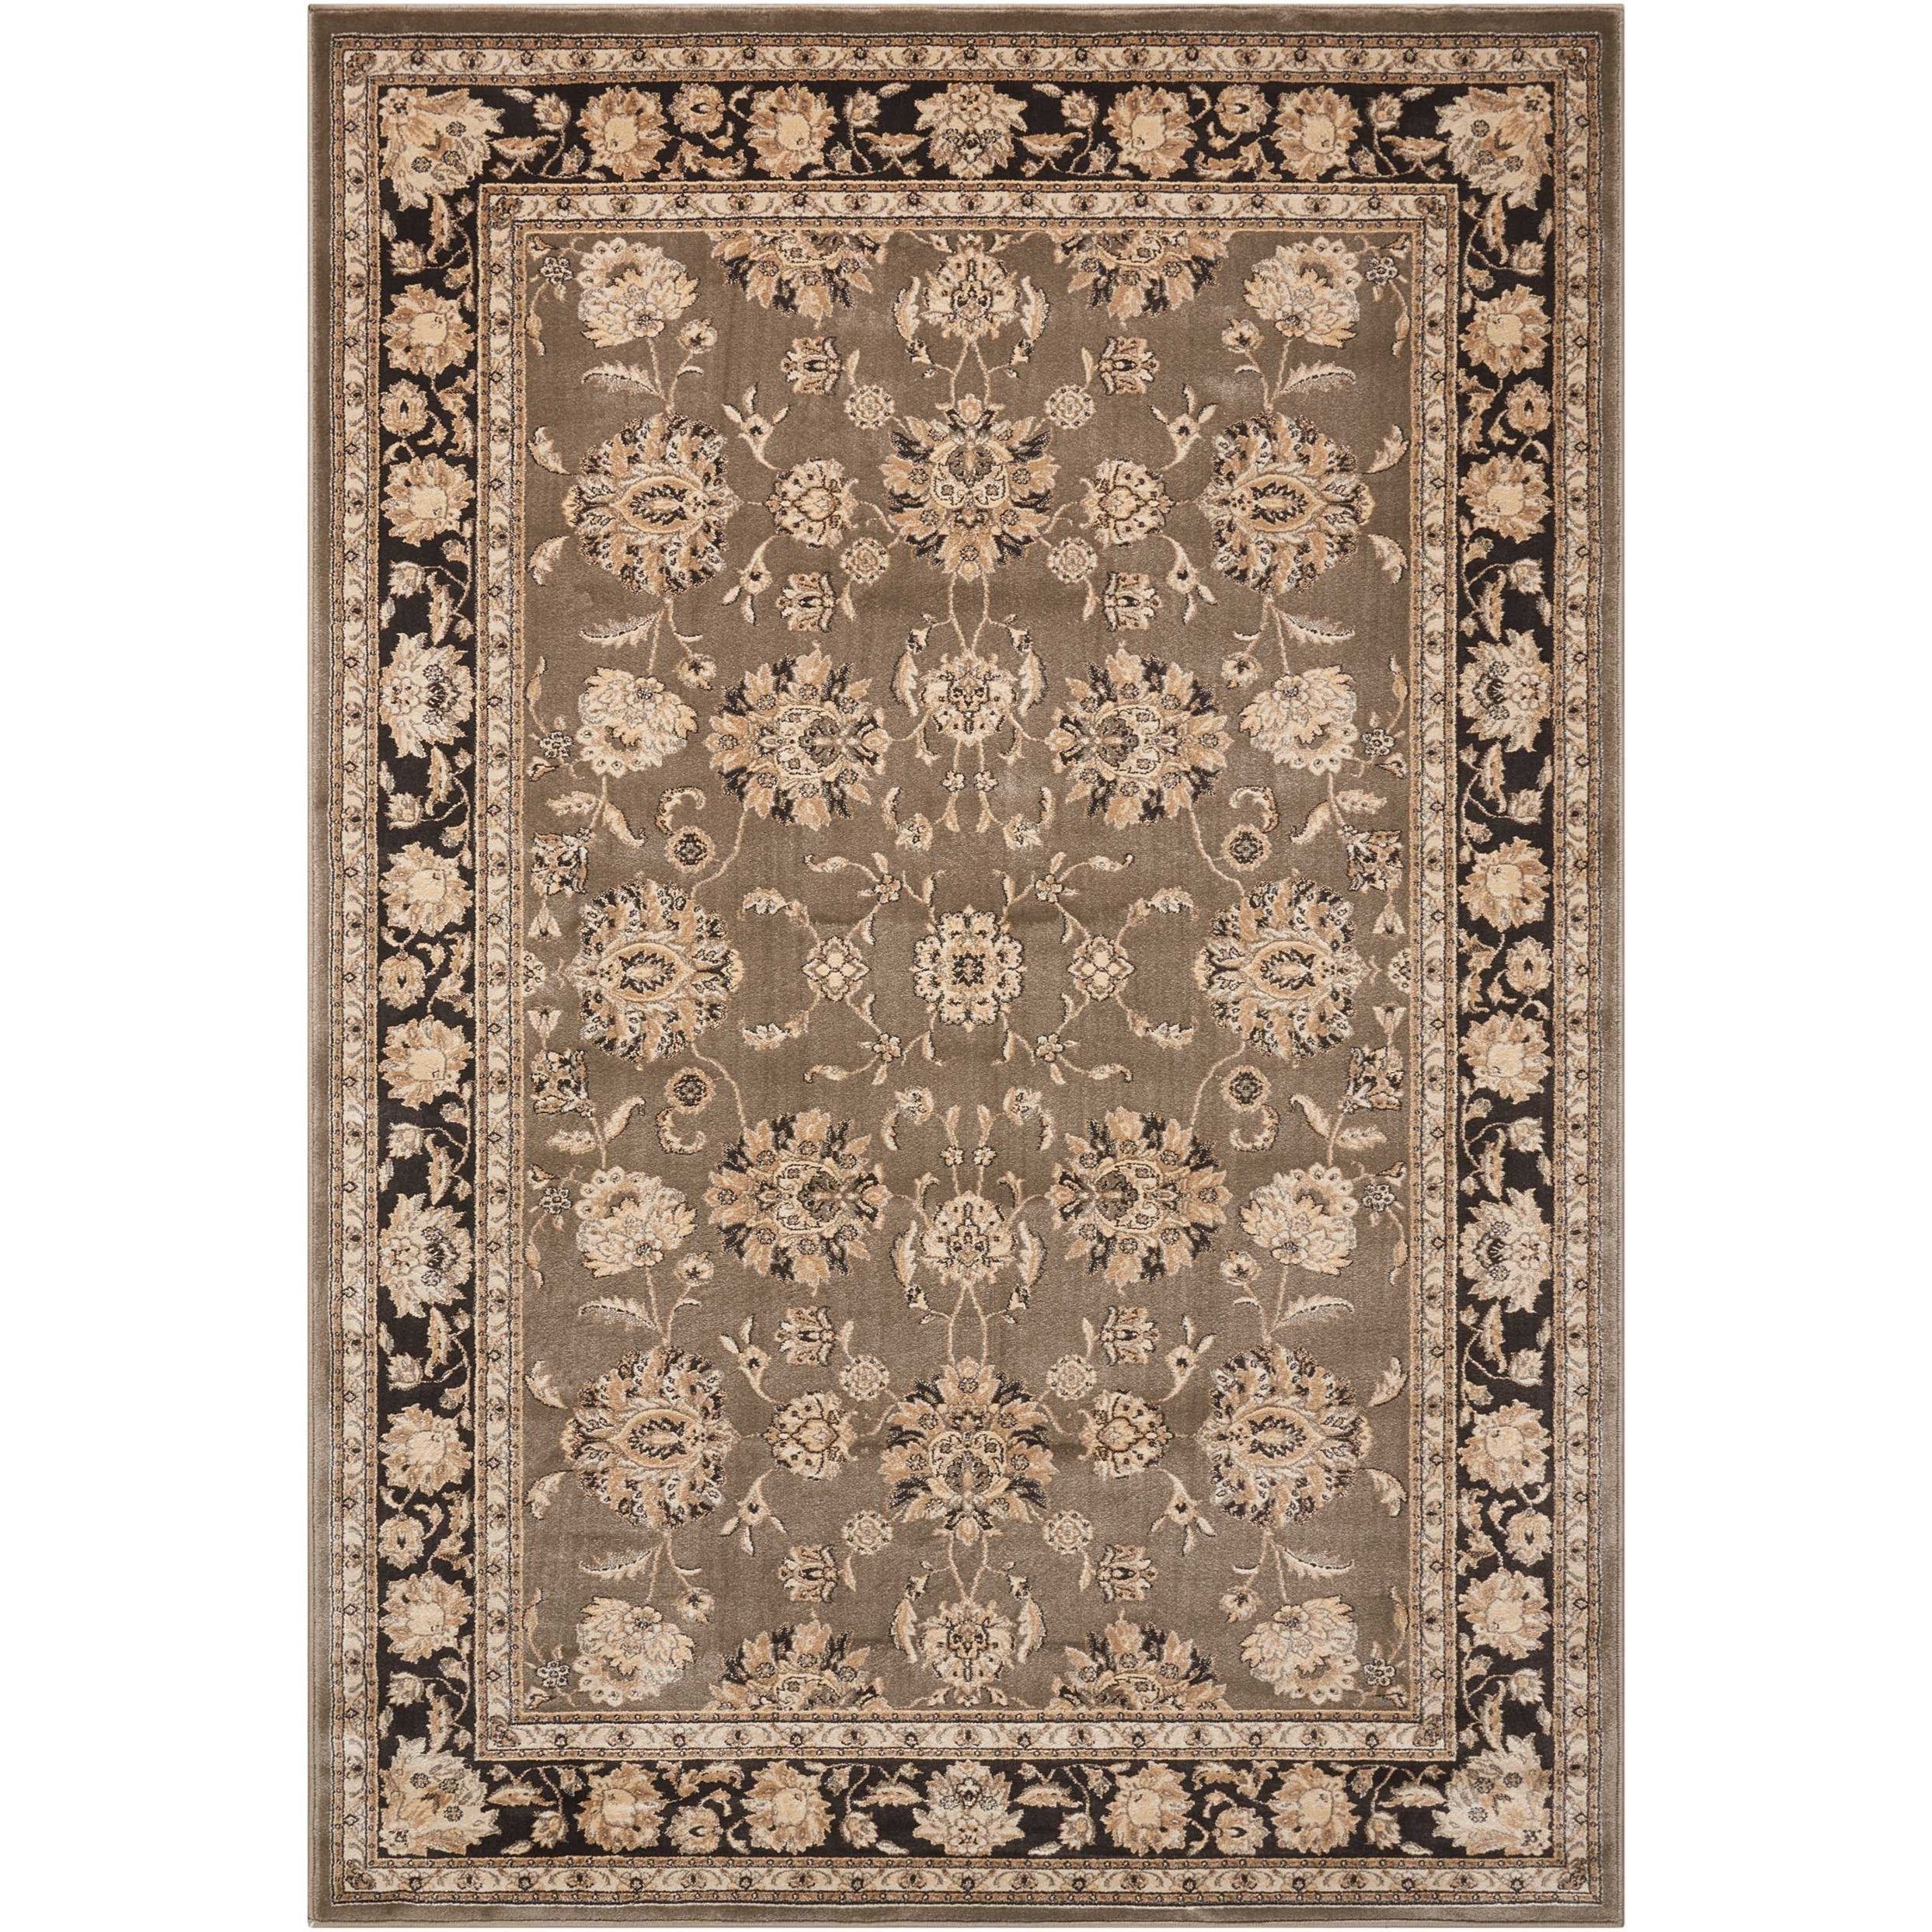 "Ararat 7'10"" x 10'6"" Grey Rectangle Rug by Nourison at Sprintz Furniture"